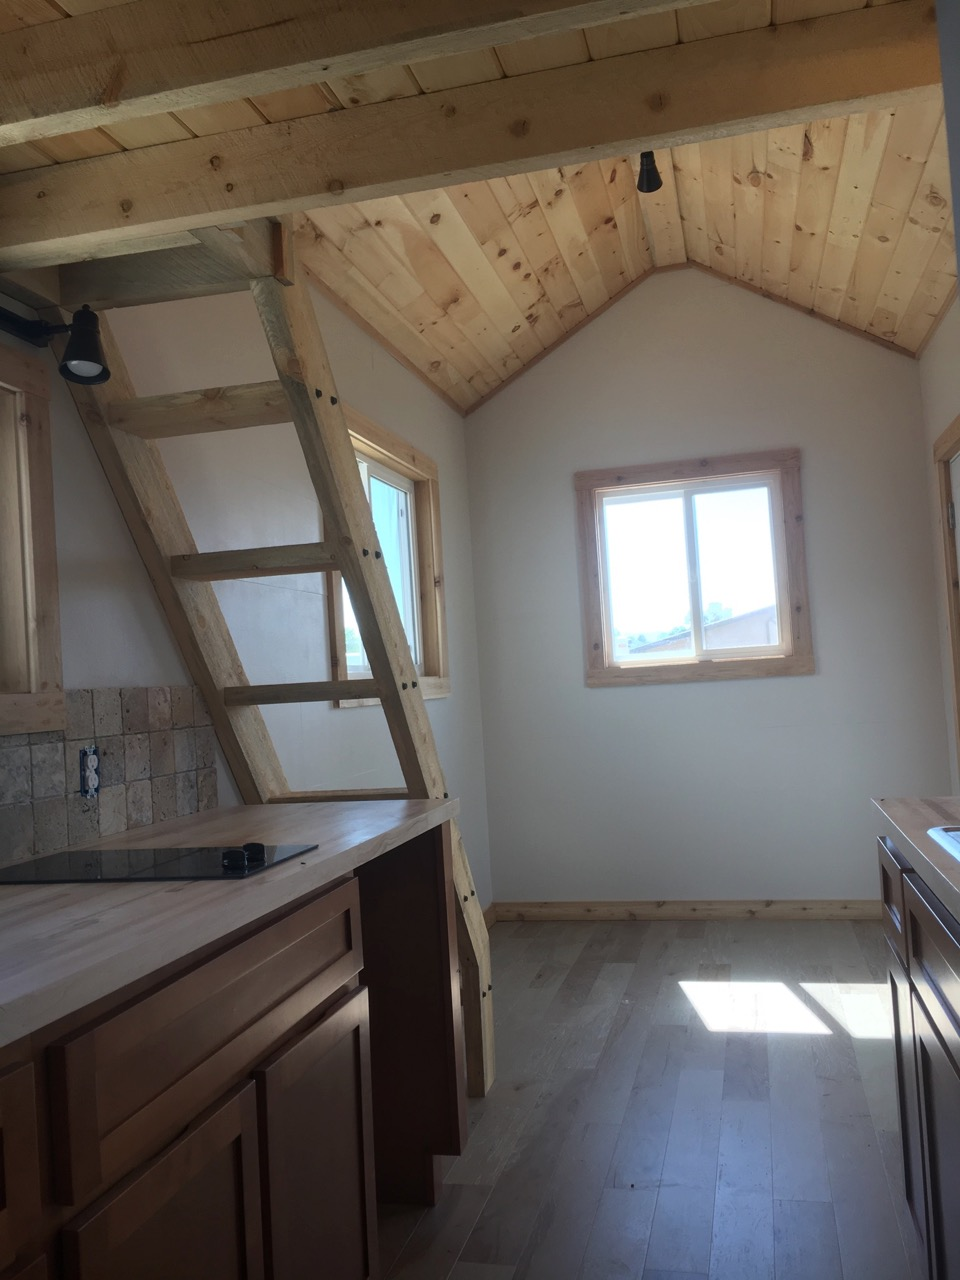 Wheelhouse-tiny-homes-26.jpg